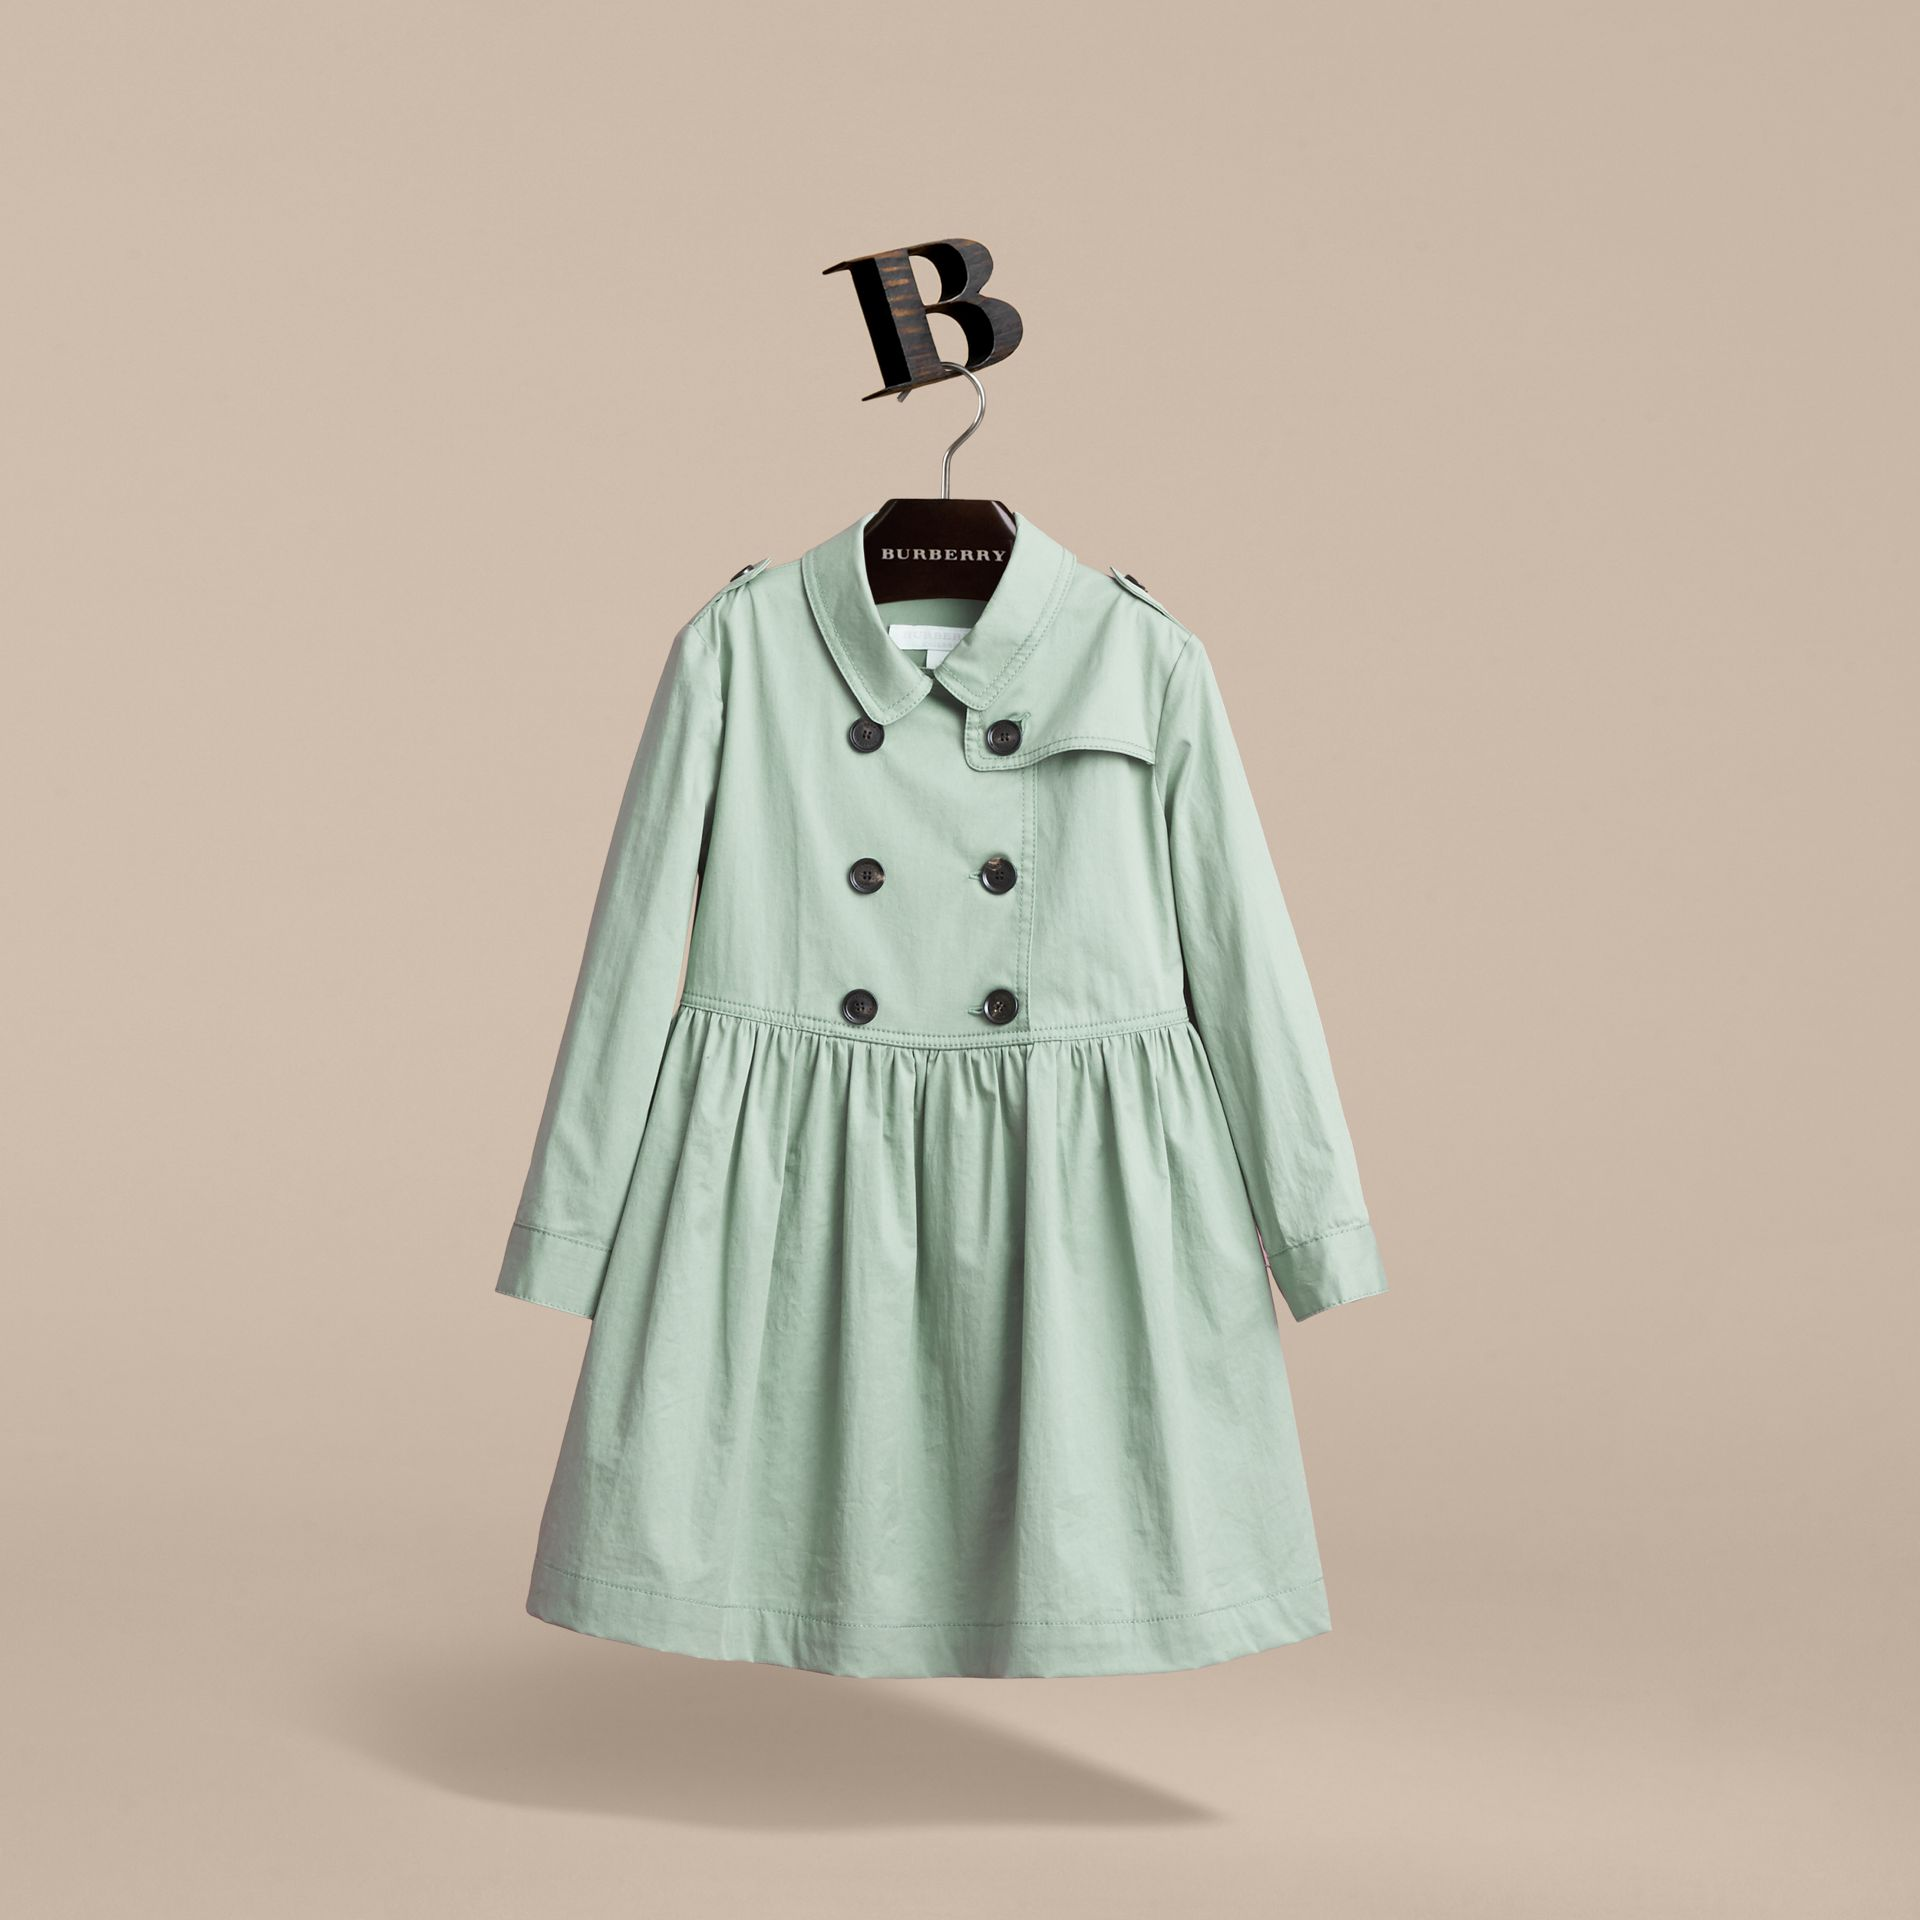 Robe trench en coton extensible avec éléments check (Vert Céladon) - Fille | Burberry - photo de la galerie 3